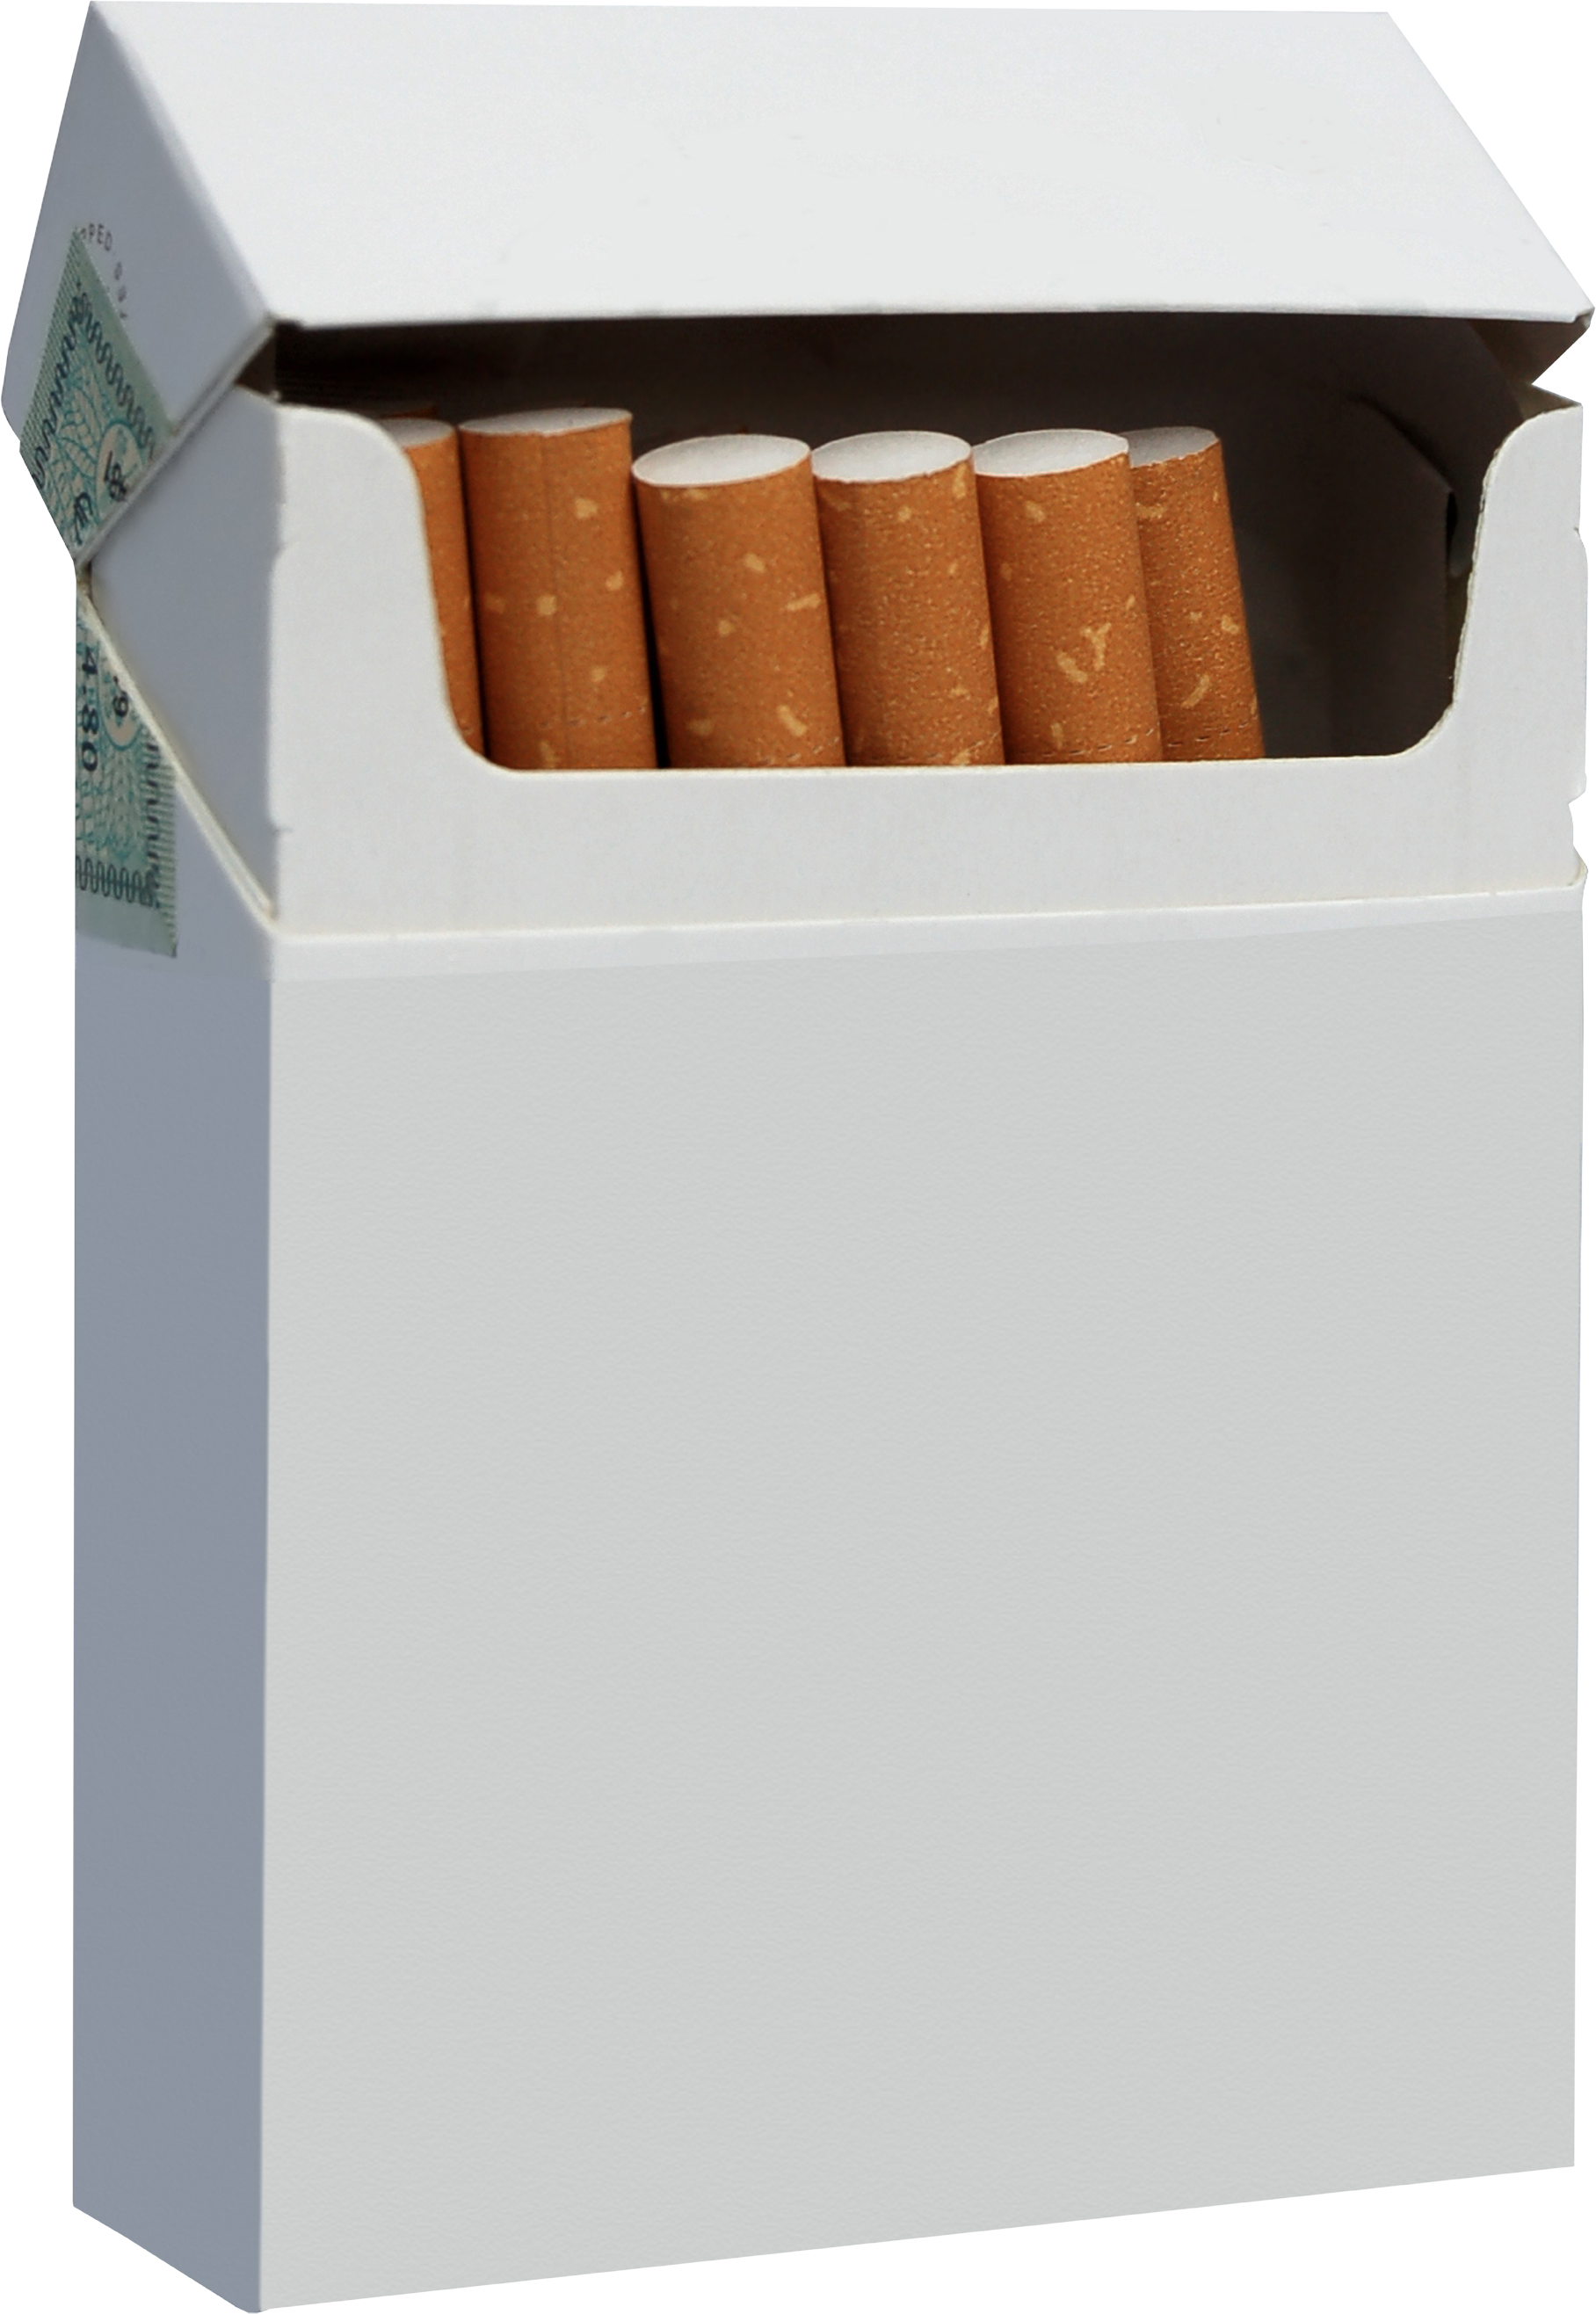 Download High-quality Png Cigarettes image #24484